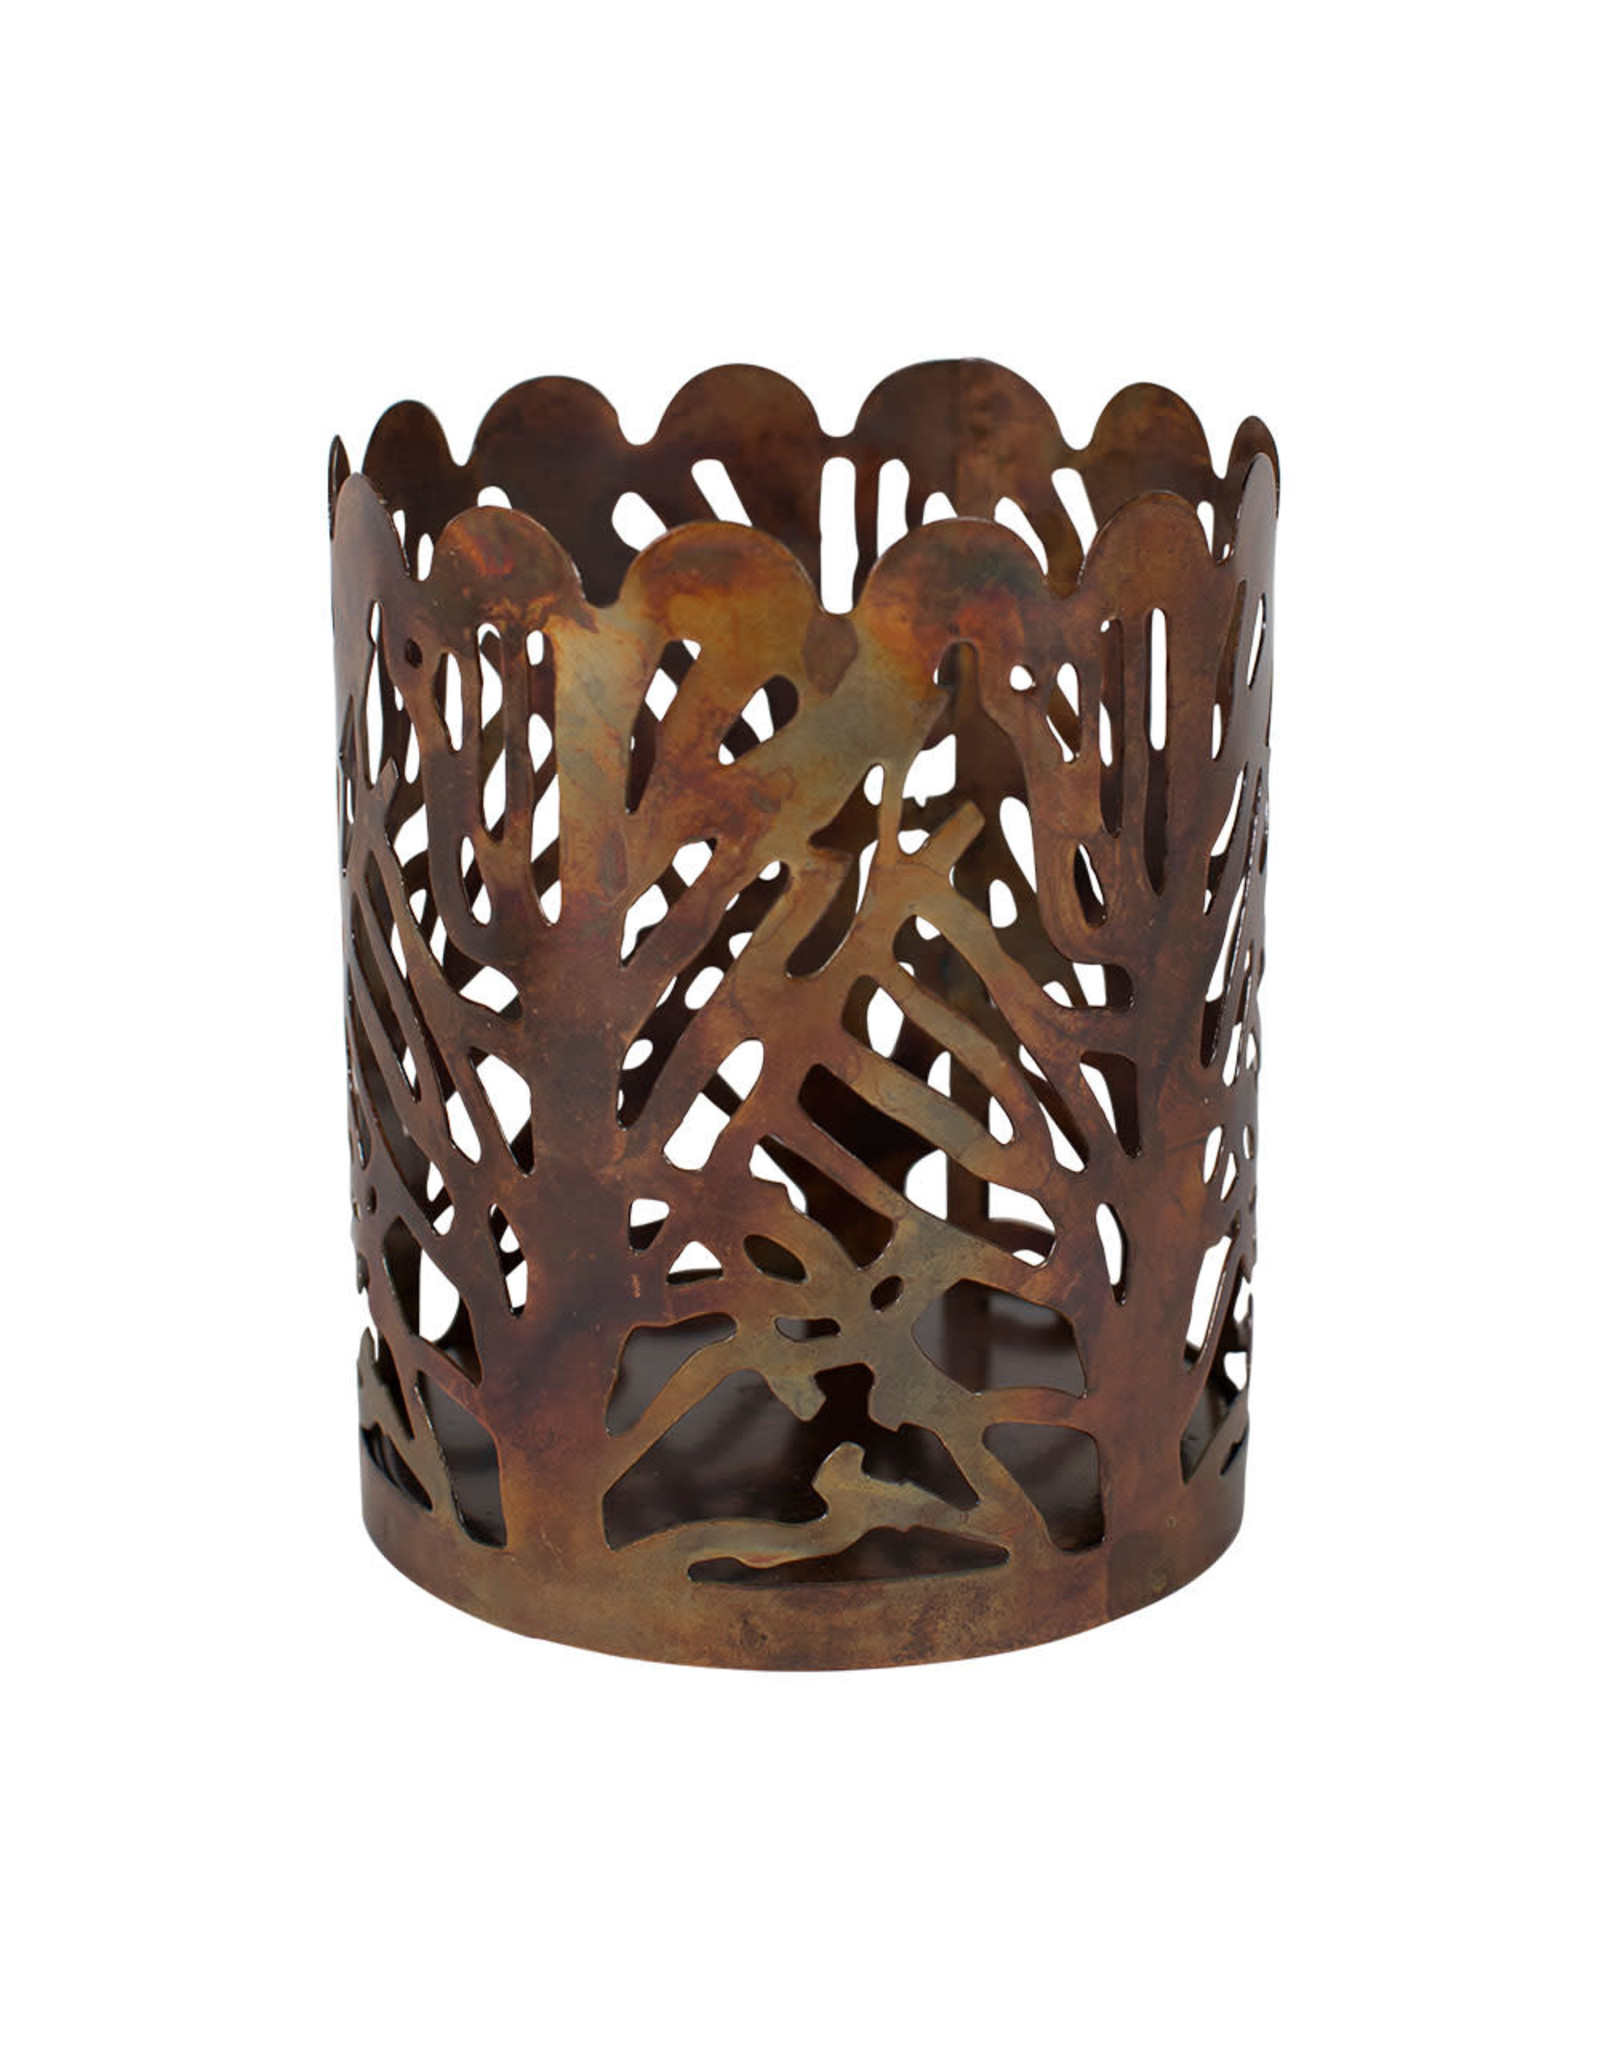 TTV USA Forest Candle Holder, India